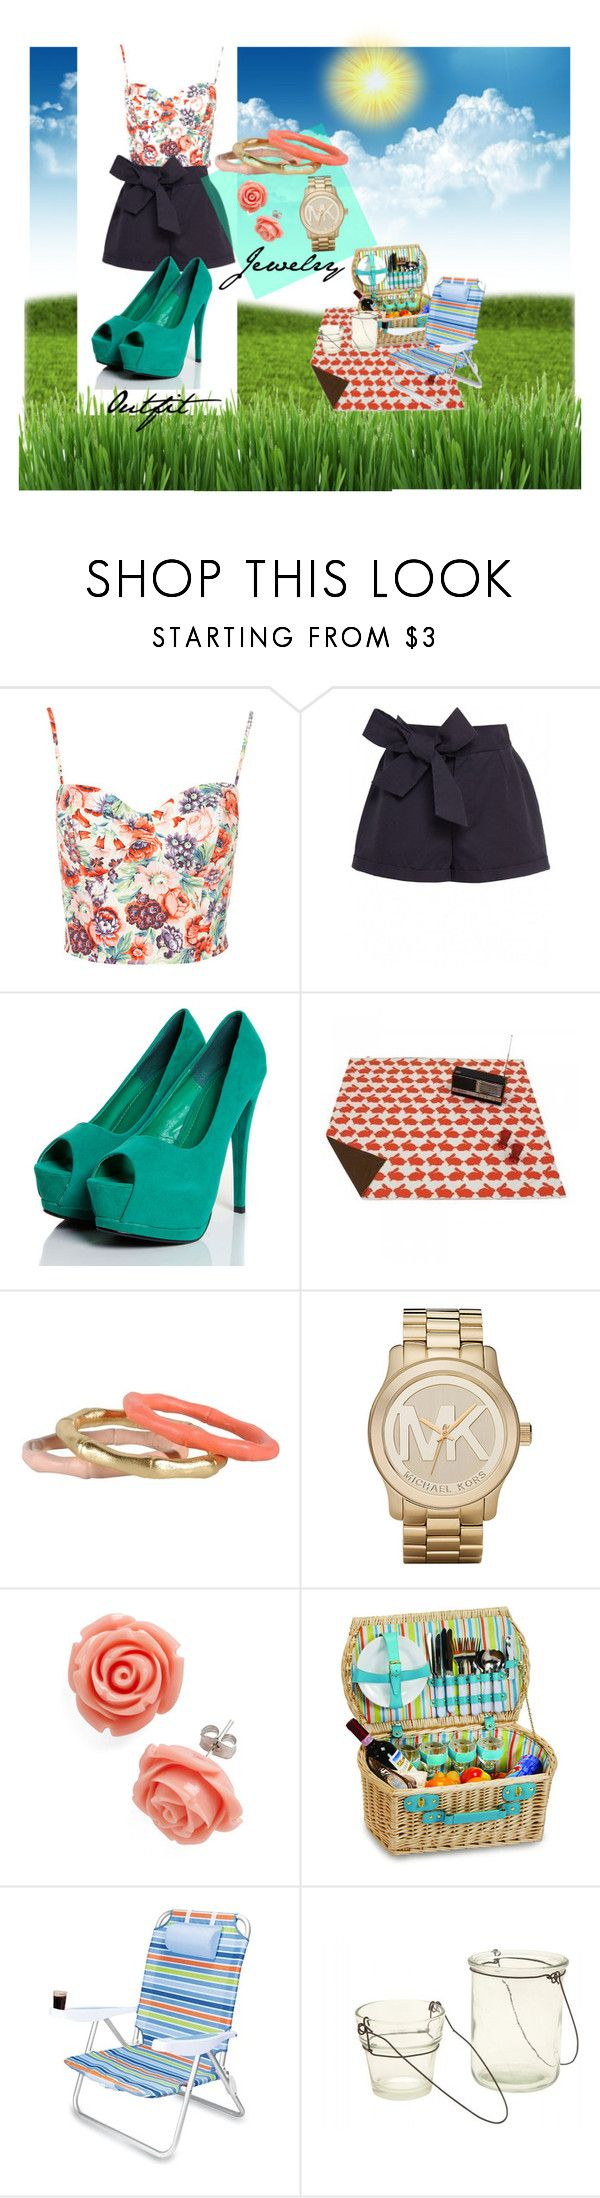 """""""Picnic date outfit"""" by melgg ❤ liked on Polyvore featuring Twenty8Twelve, Natalia Brilli, Michael Kors, Jayson Home, floral corset, high waisted shorts, romantic, high heels, watch and arm candy"""